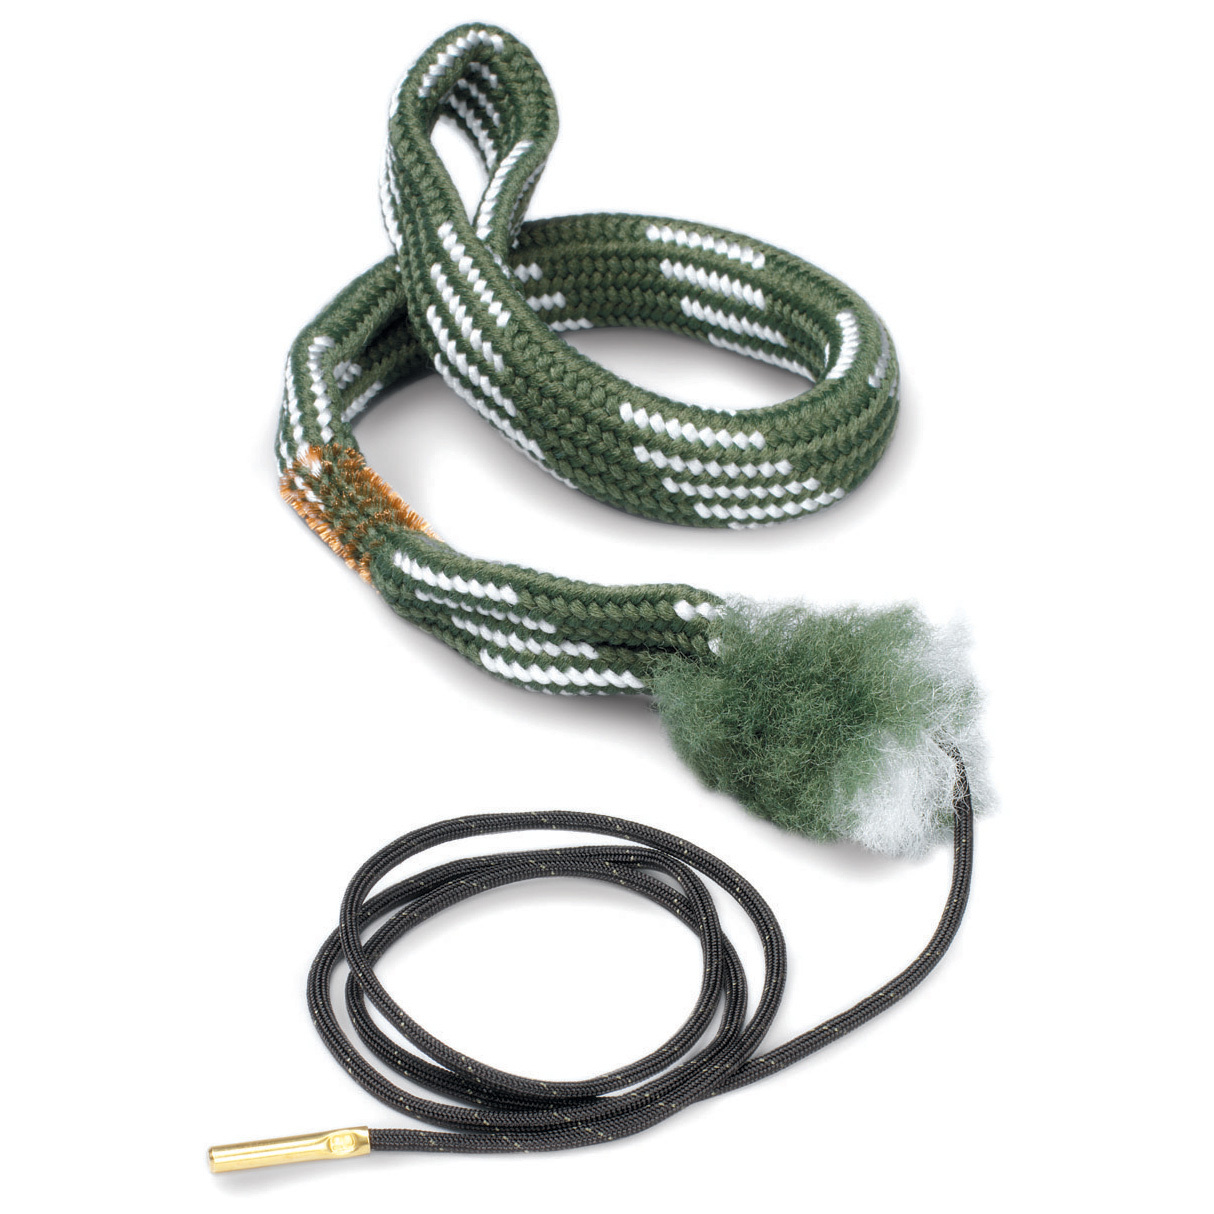 Hoppe's Pistol BoreSnake cleans your handgun FAST in one swift pass. Introducing the fastest bore cleaner on the planet. One pass loosens large particles, scrubs out the remaining residue with a bronze brush, then swabs it all spotless with a cleaning area 160 times larger than a standard patch. Add a few drops of gun lubricating oil and your gun's ready for storage.More goodness:The world's quickest, 3-step bore shine Extremely packable Brass weight on the pull cord is stamped with the size Machine washable Patented one-piece design. State Caliber, as available in the Shopping Cart. Clean up on this deal by going ONLINE today! - $17.99